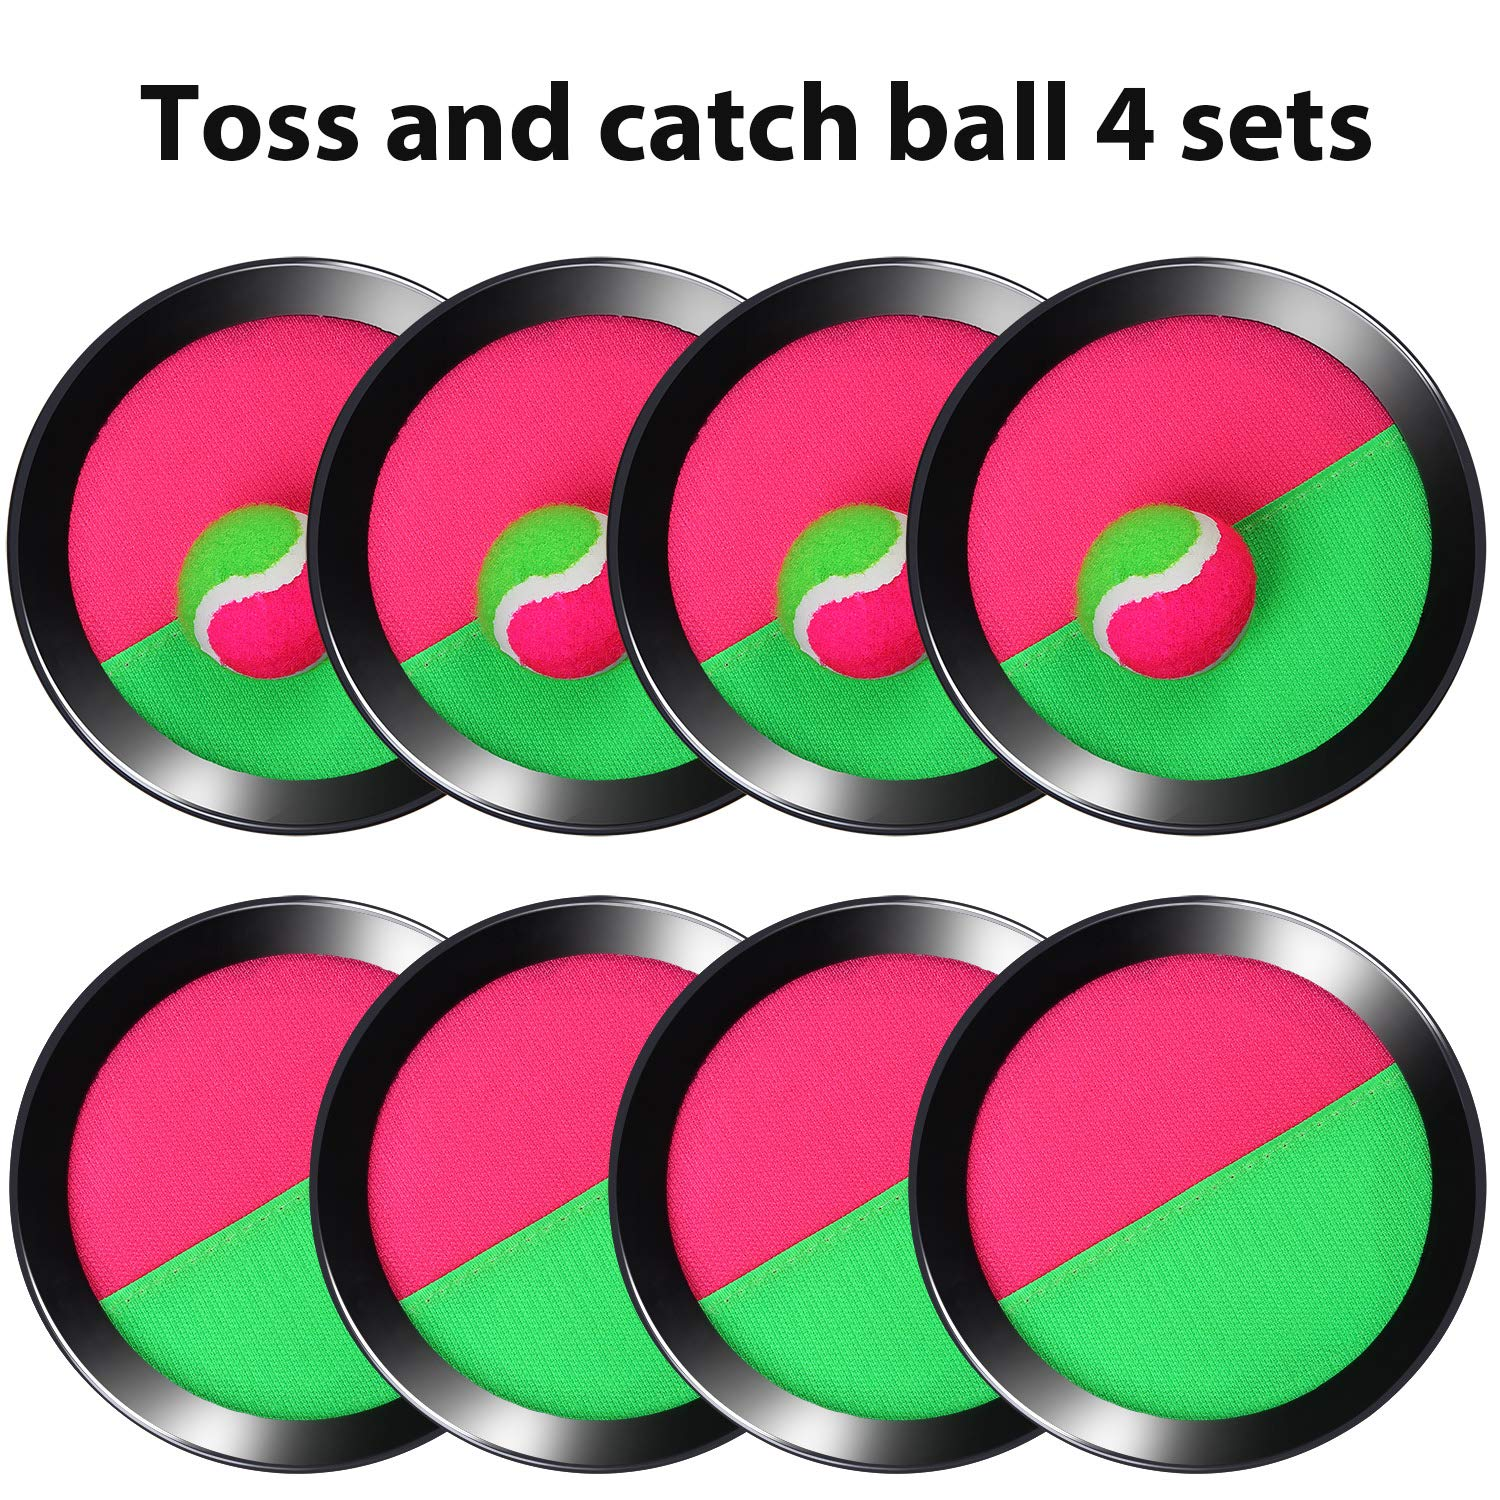 15.5cm 8 Paddles and 8 Balls Beach and Party Favor with Storage Bag Tupa Toss and Catch Paddle Game Disc 4 Set Paddle Toss and Catch Ball Sport Game Suitable for Sports